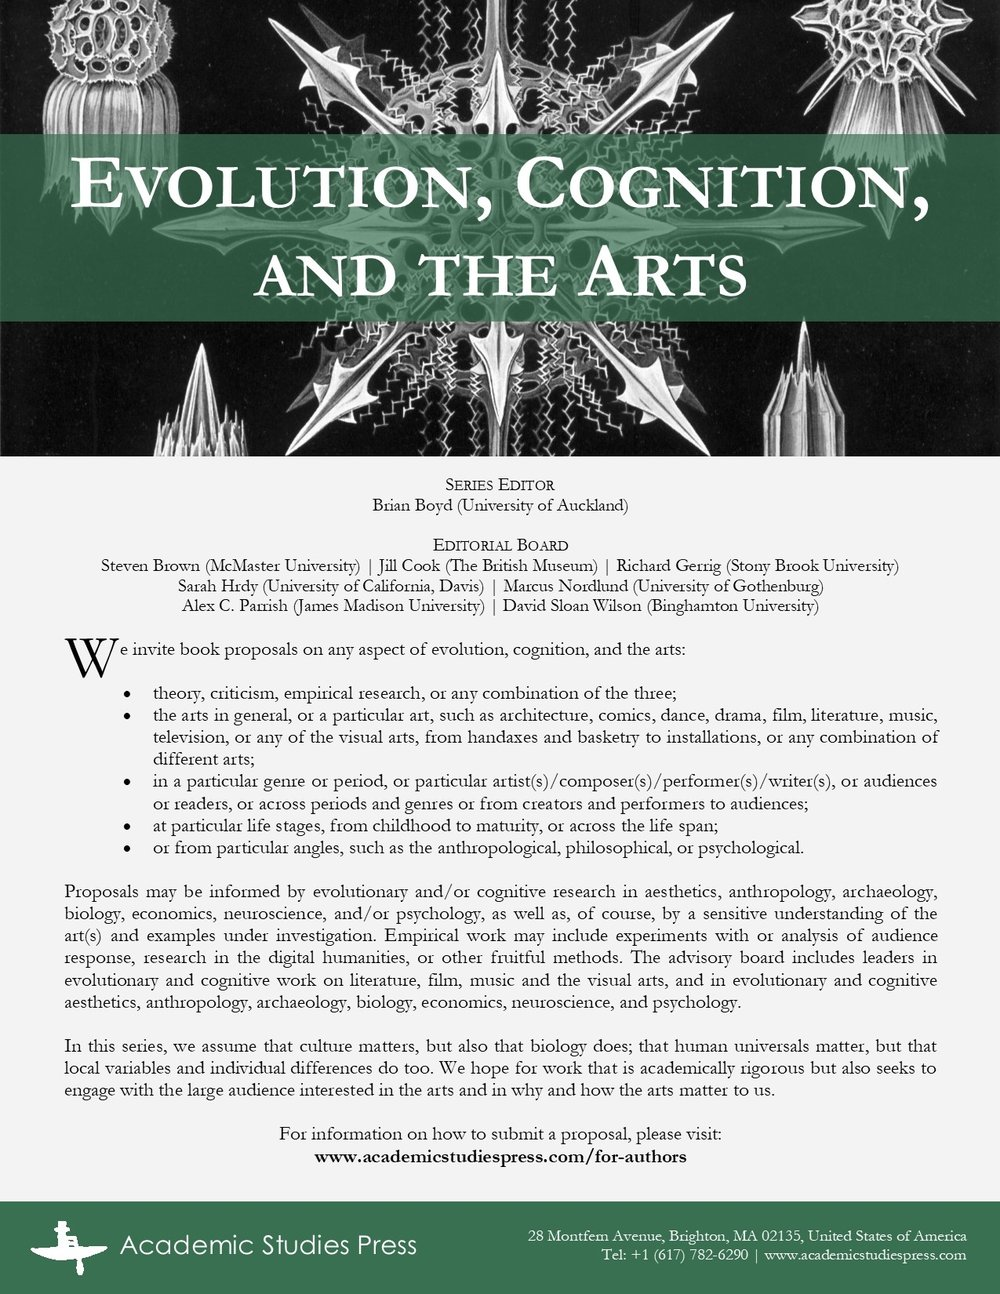 Evolution Series Flyer.jpg